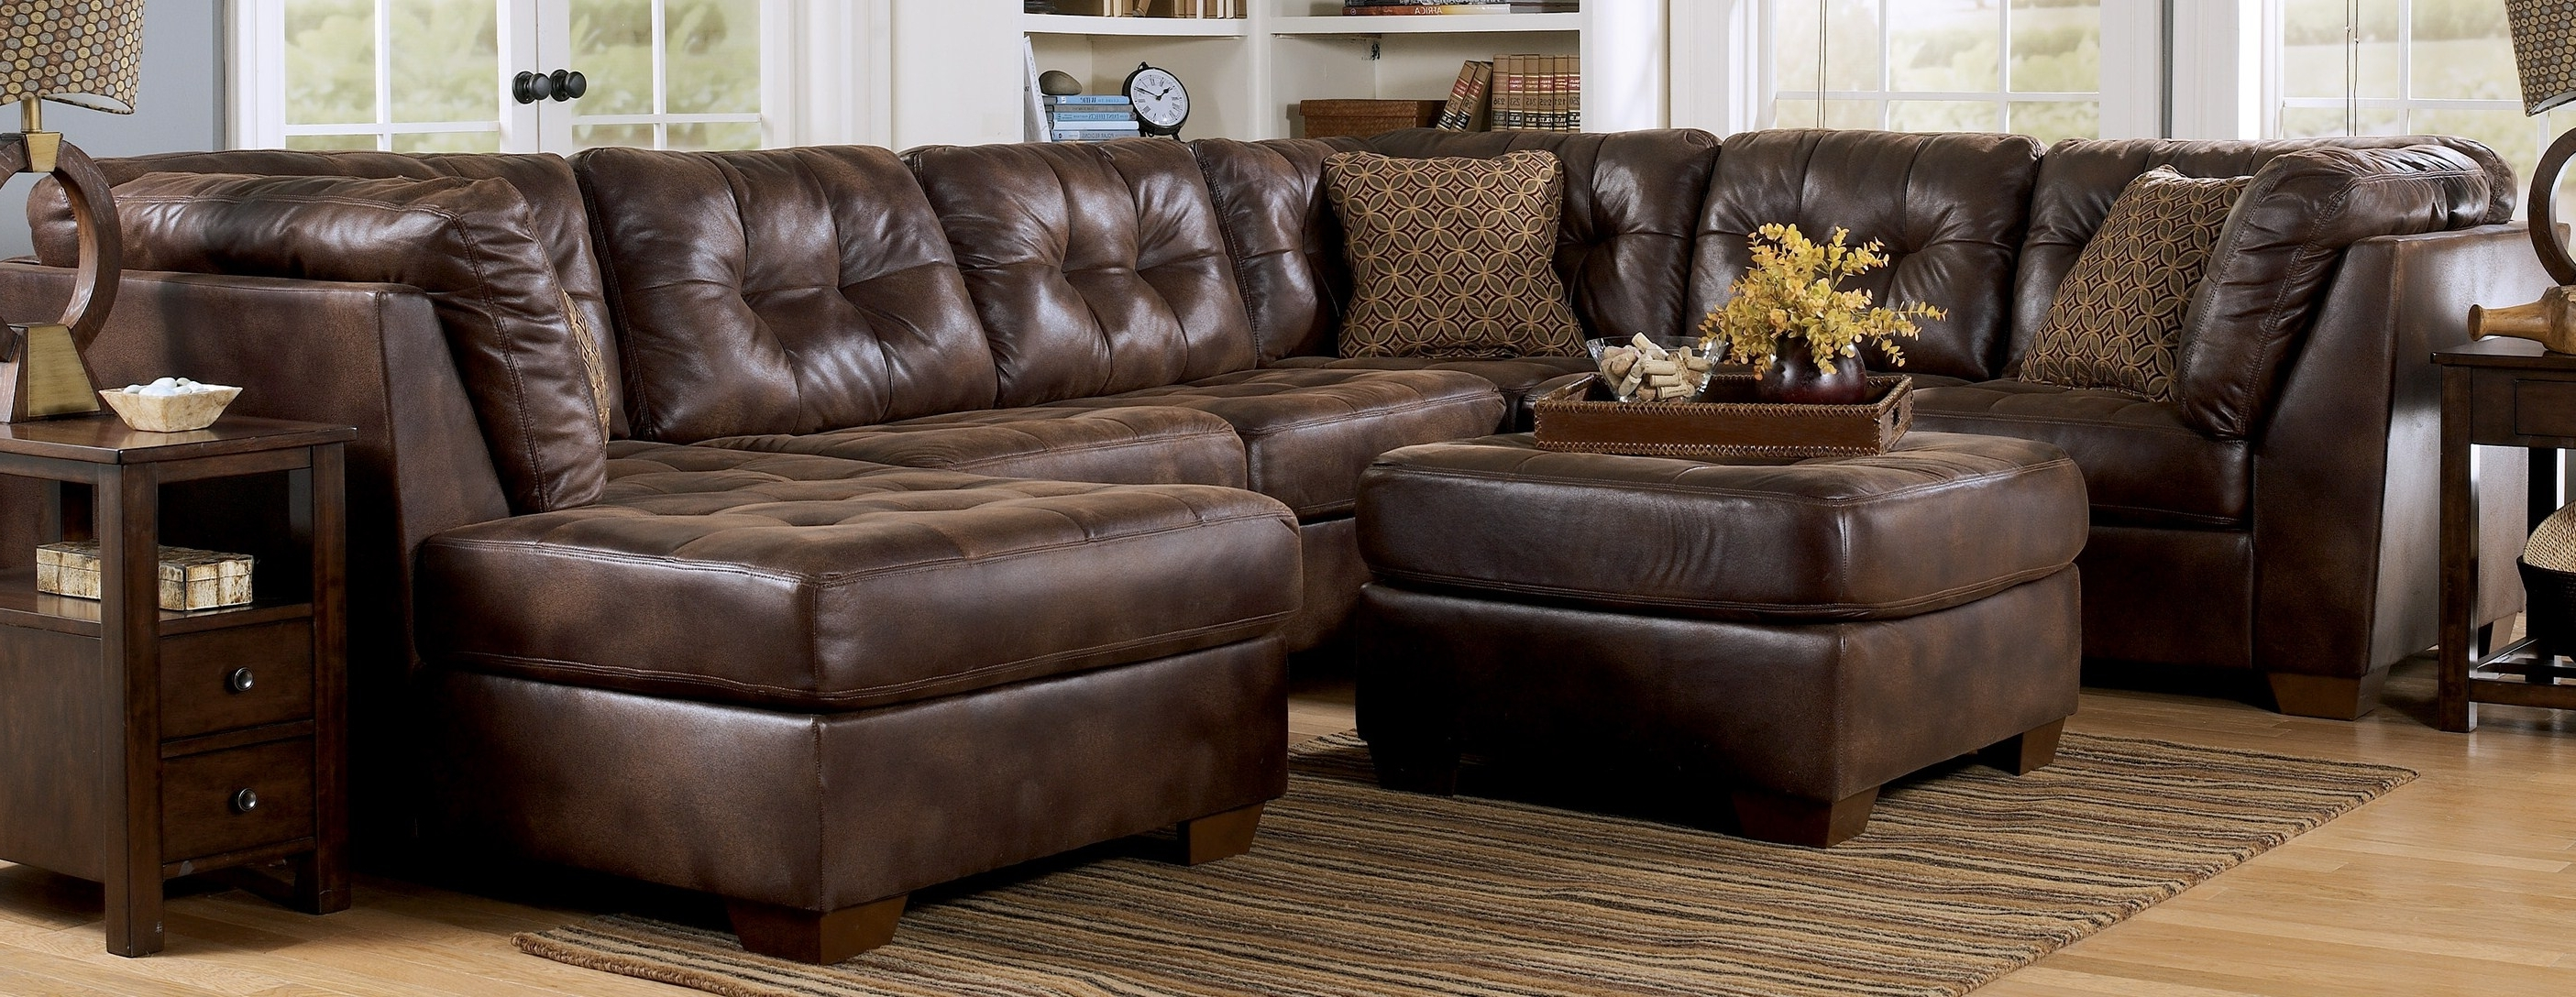 Current My Parents Have This Couch, And Now We're Saving For It! Its Sooo Inside Sectional Sleeper Sofas With Ottoman (View 2 of 15)